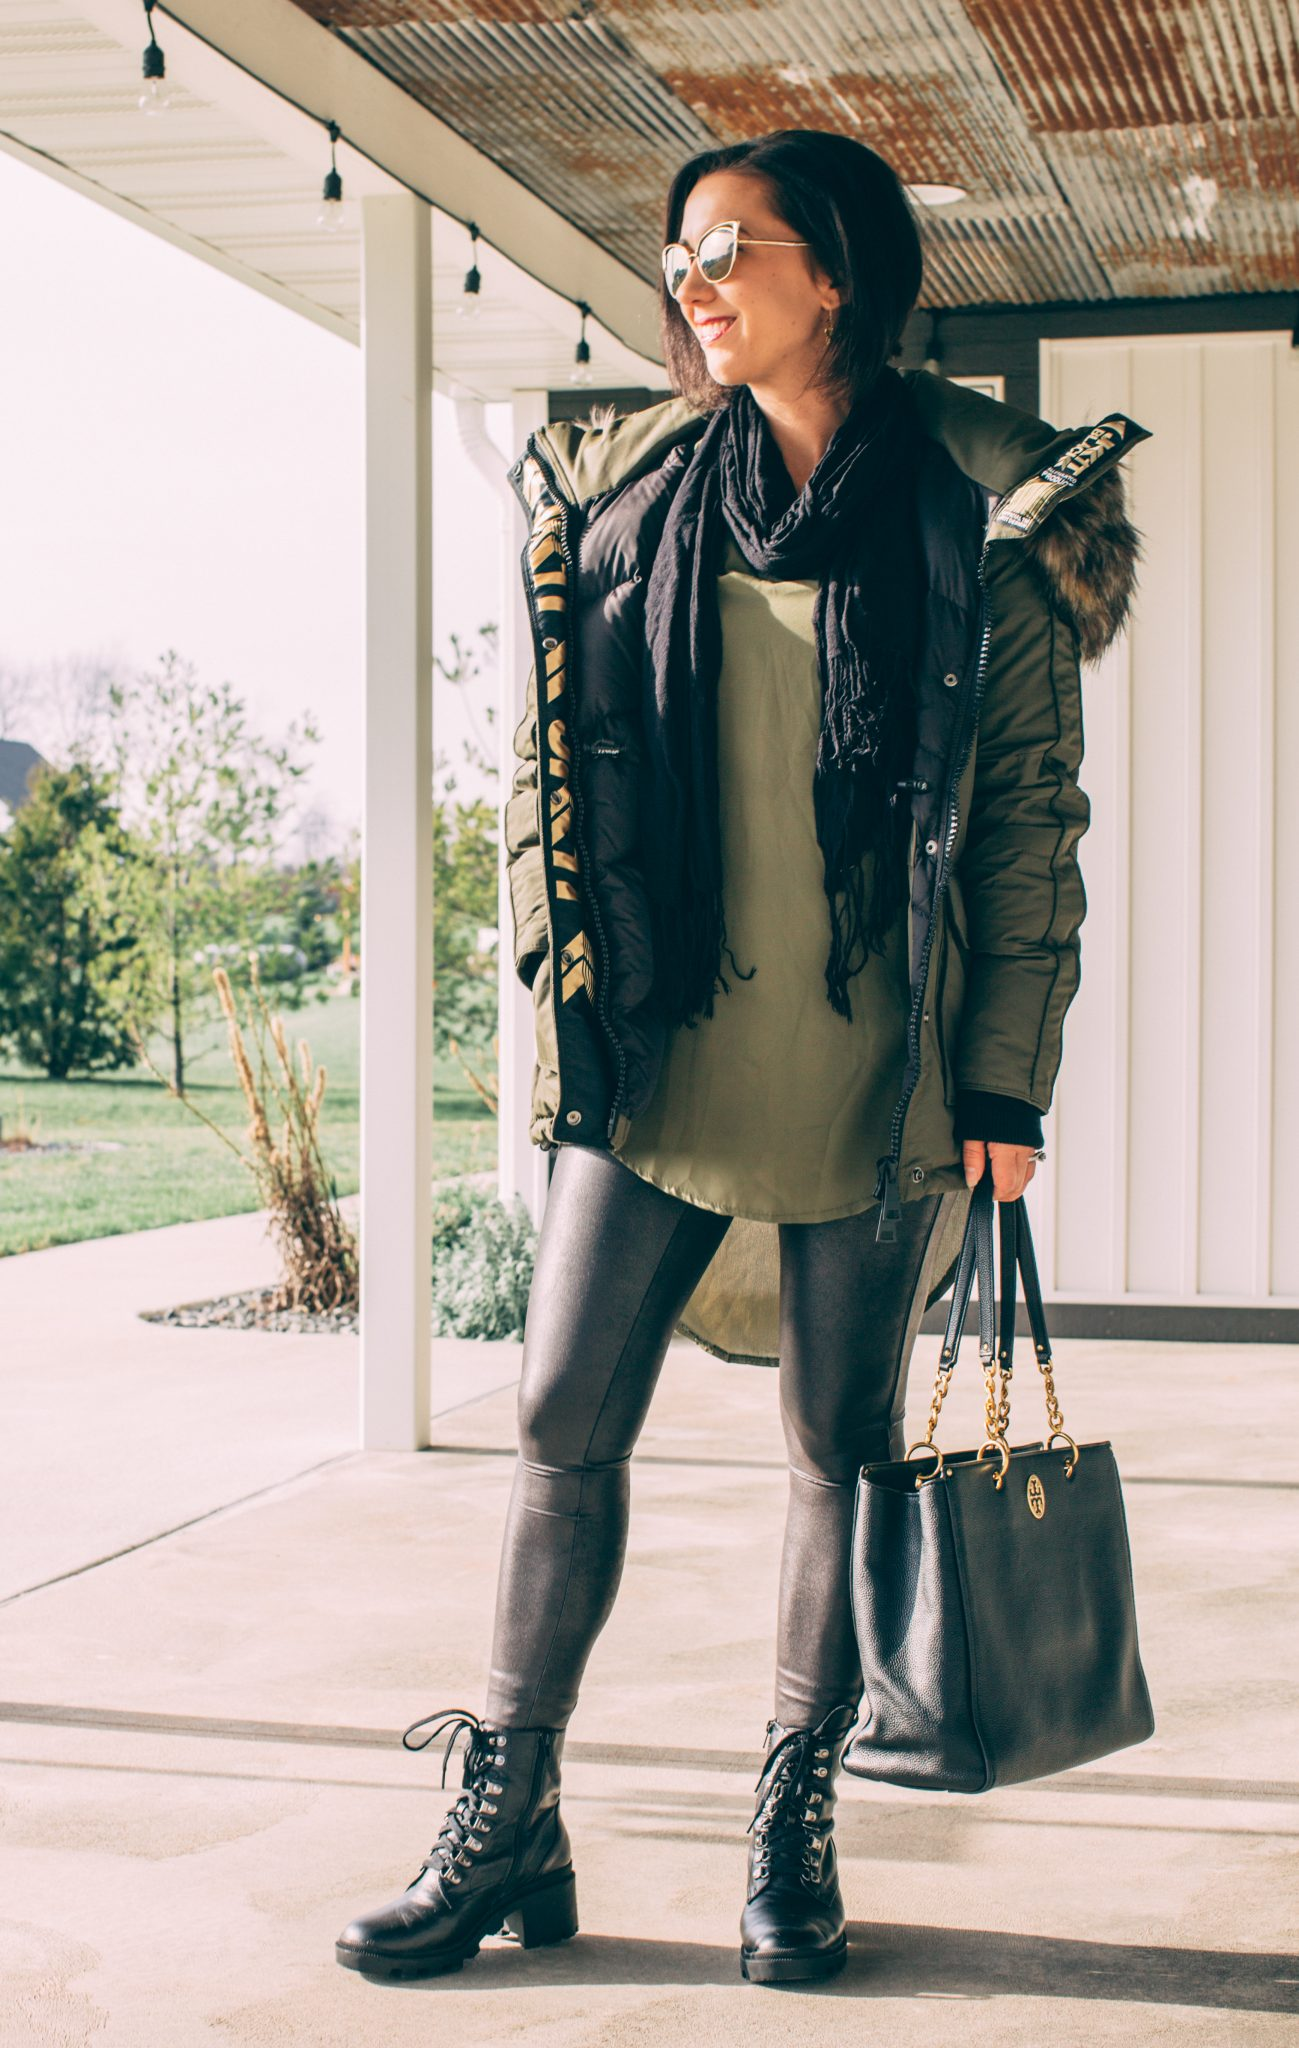 My JACK1T coat styled in with edgy faux leather leggings and combat boots